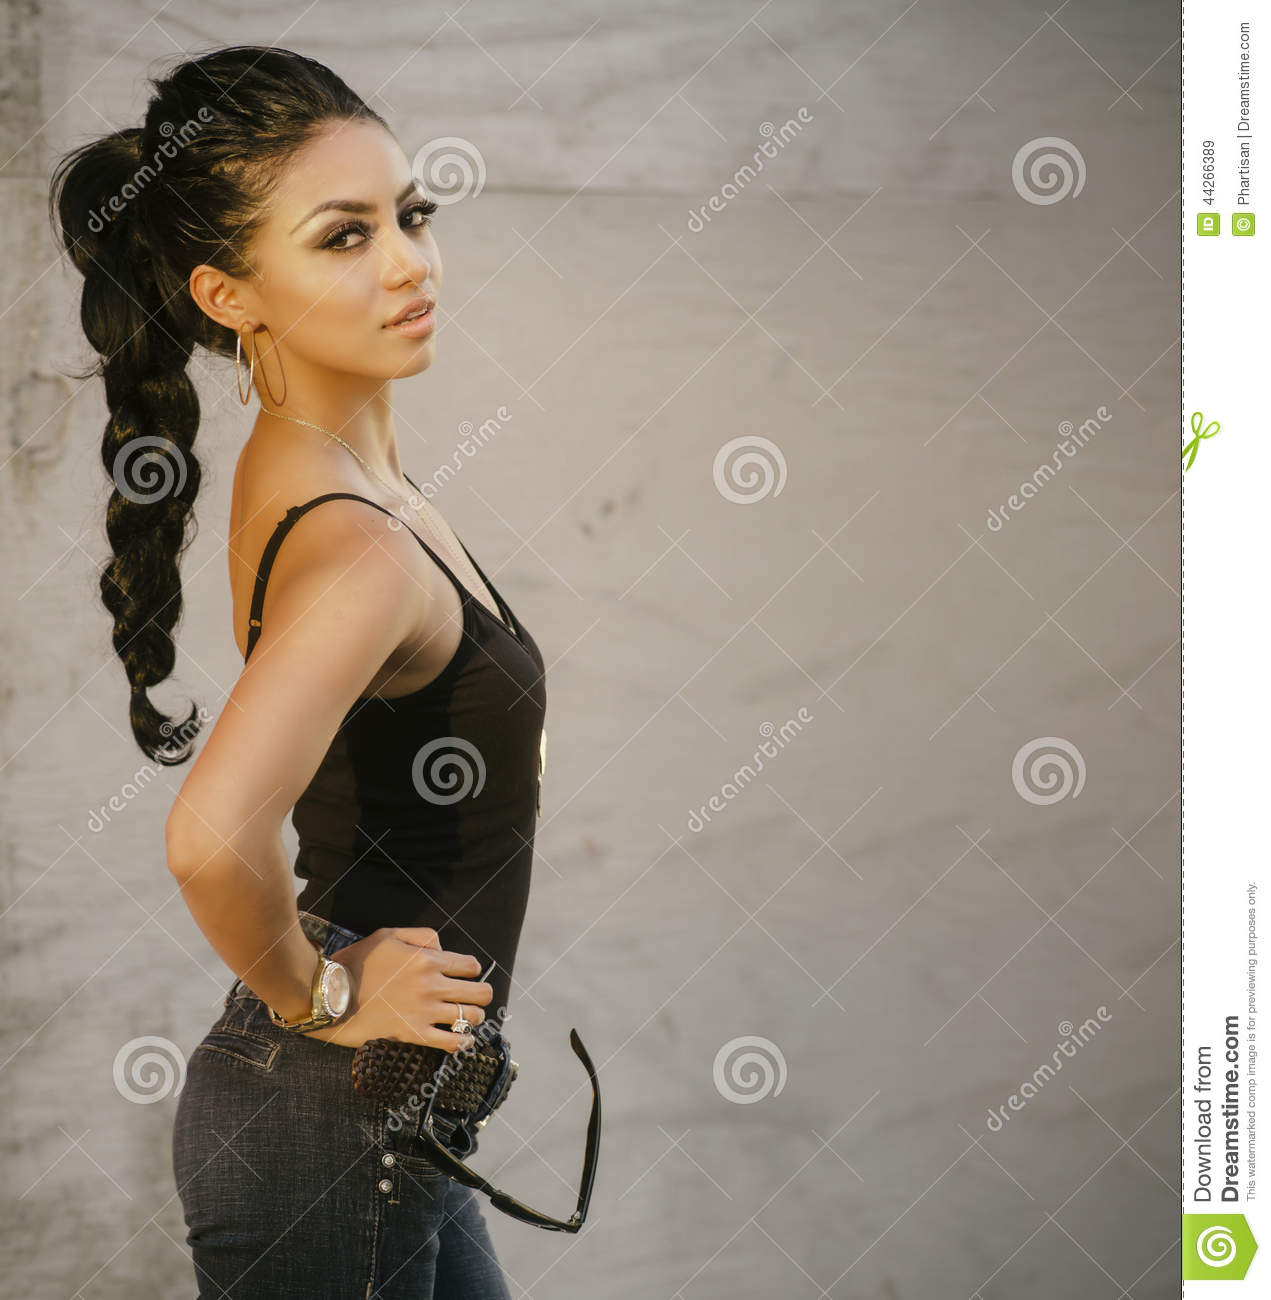 Exotic woman with braided hair